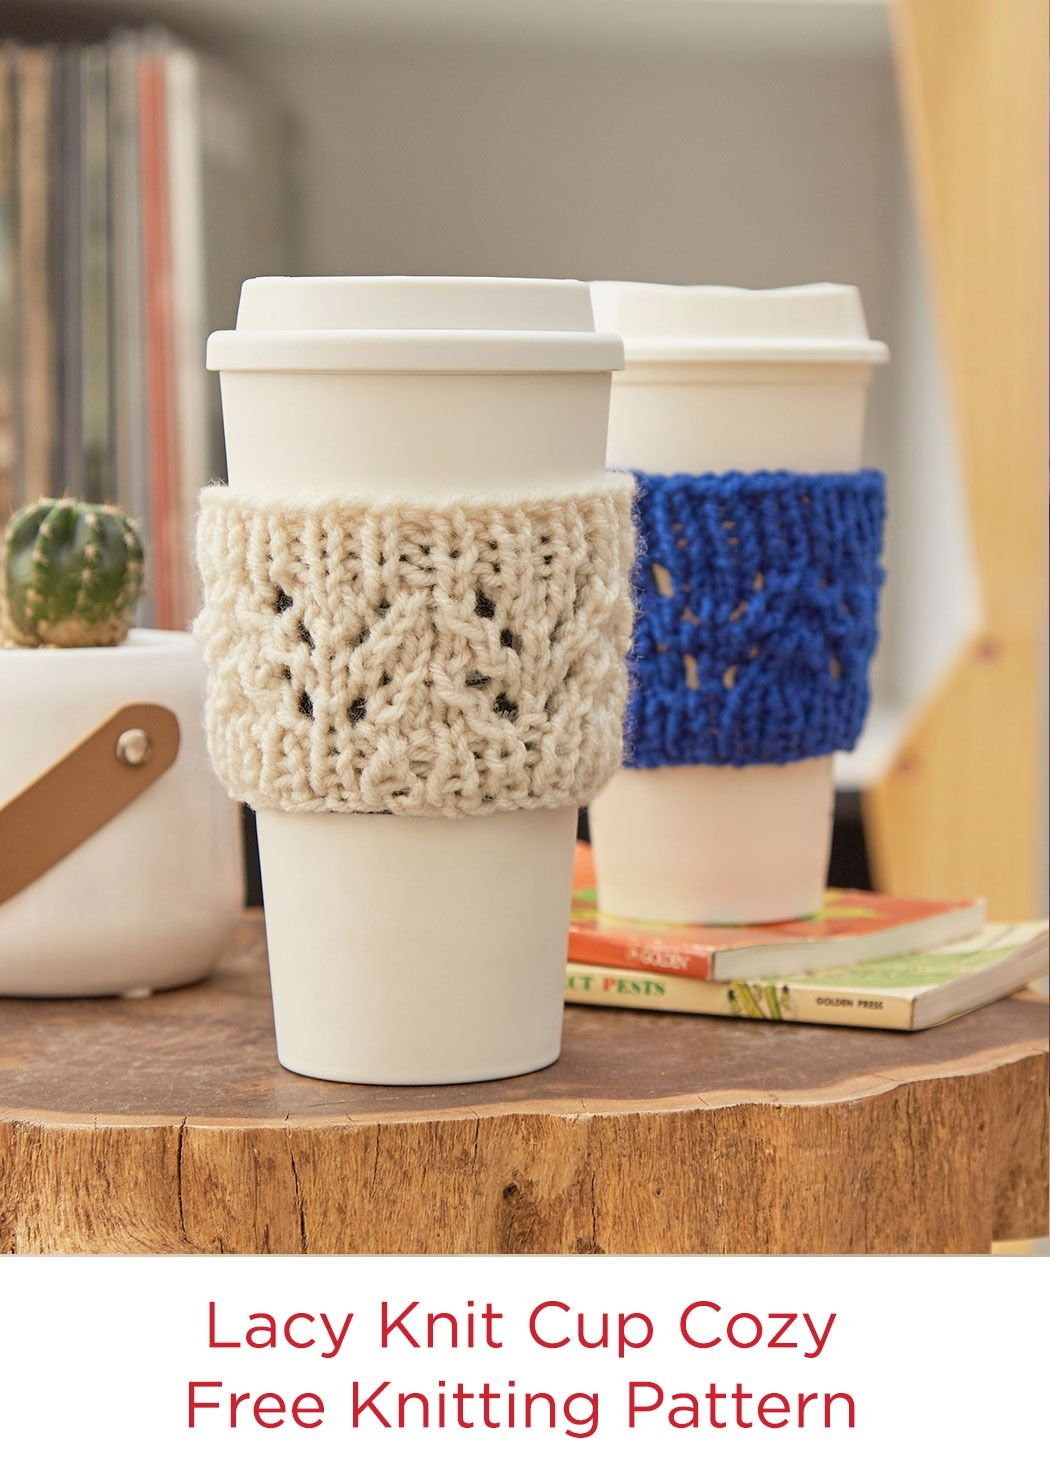 Lacy Knit Cup Cozy Free Pattern Red Heart Yarns | Dotti | Pinterest